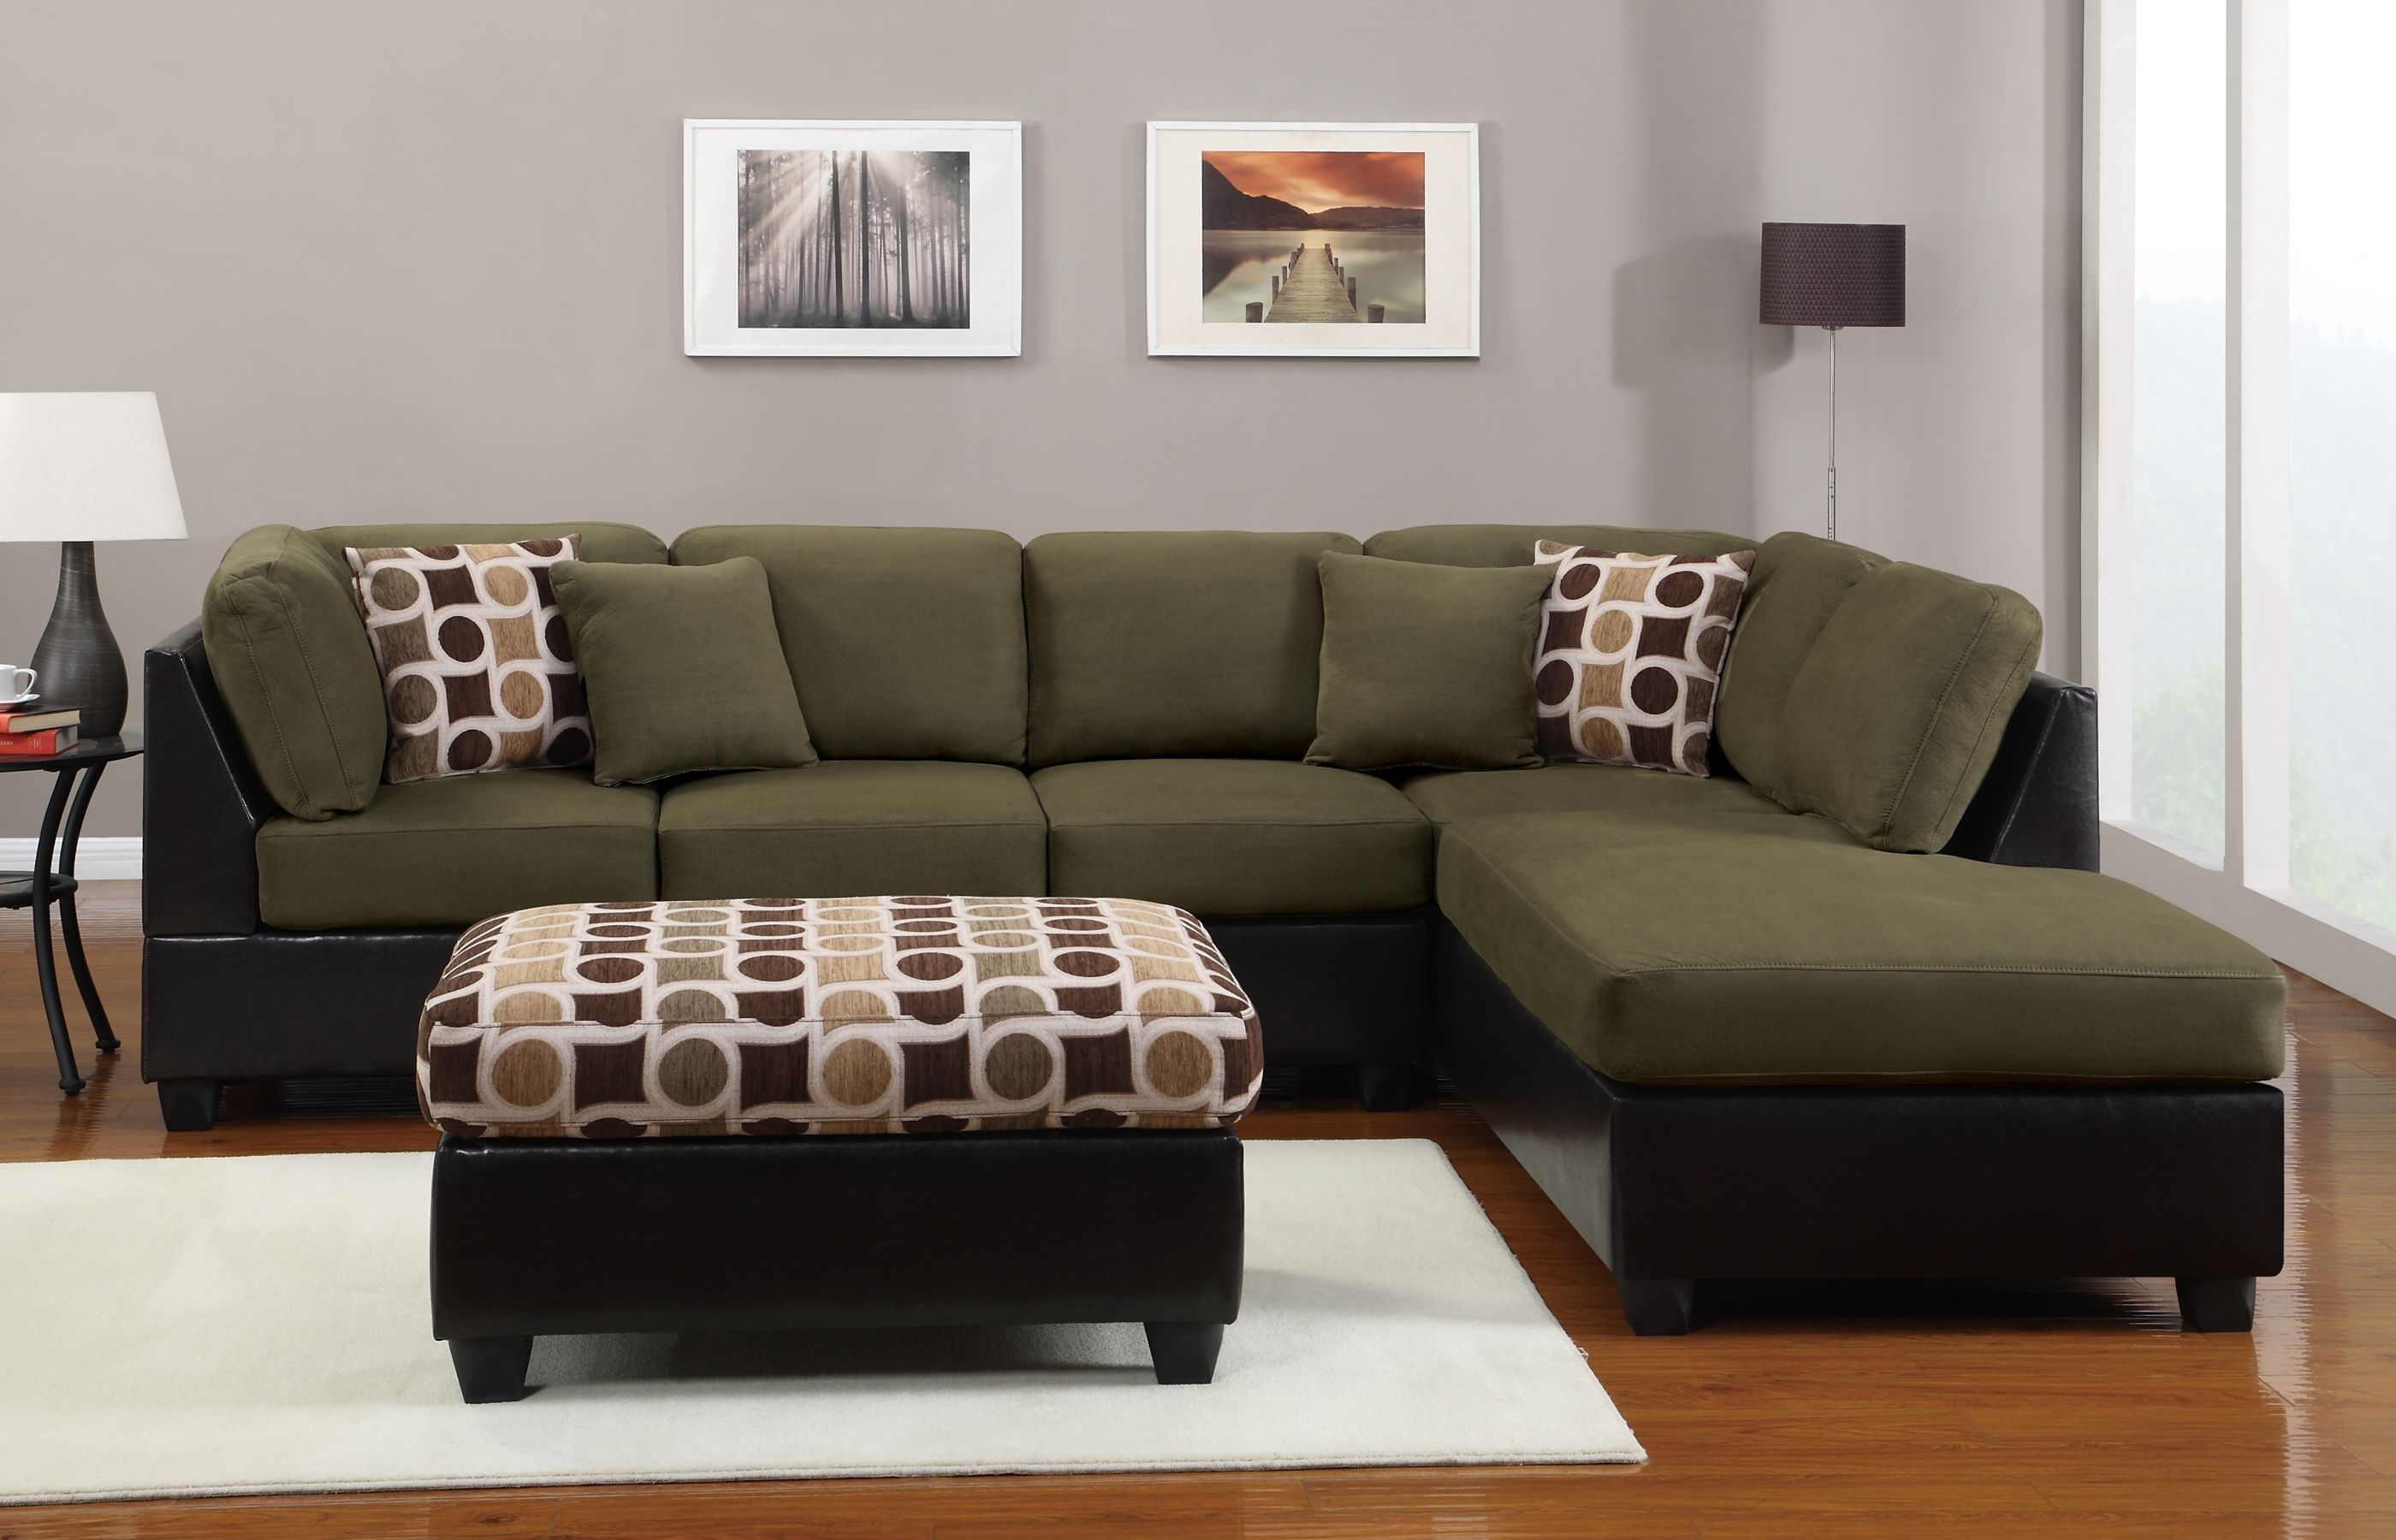 Most Popular Chaise Sectional Couch E2 80 94 Panoramalife Photography L Shaped Regarding Eau Claire Wi Sectional Sofas (View 10 of 20)